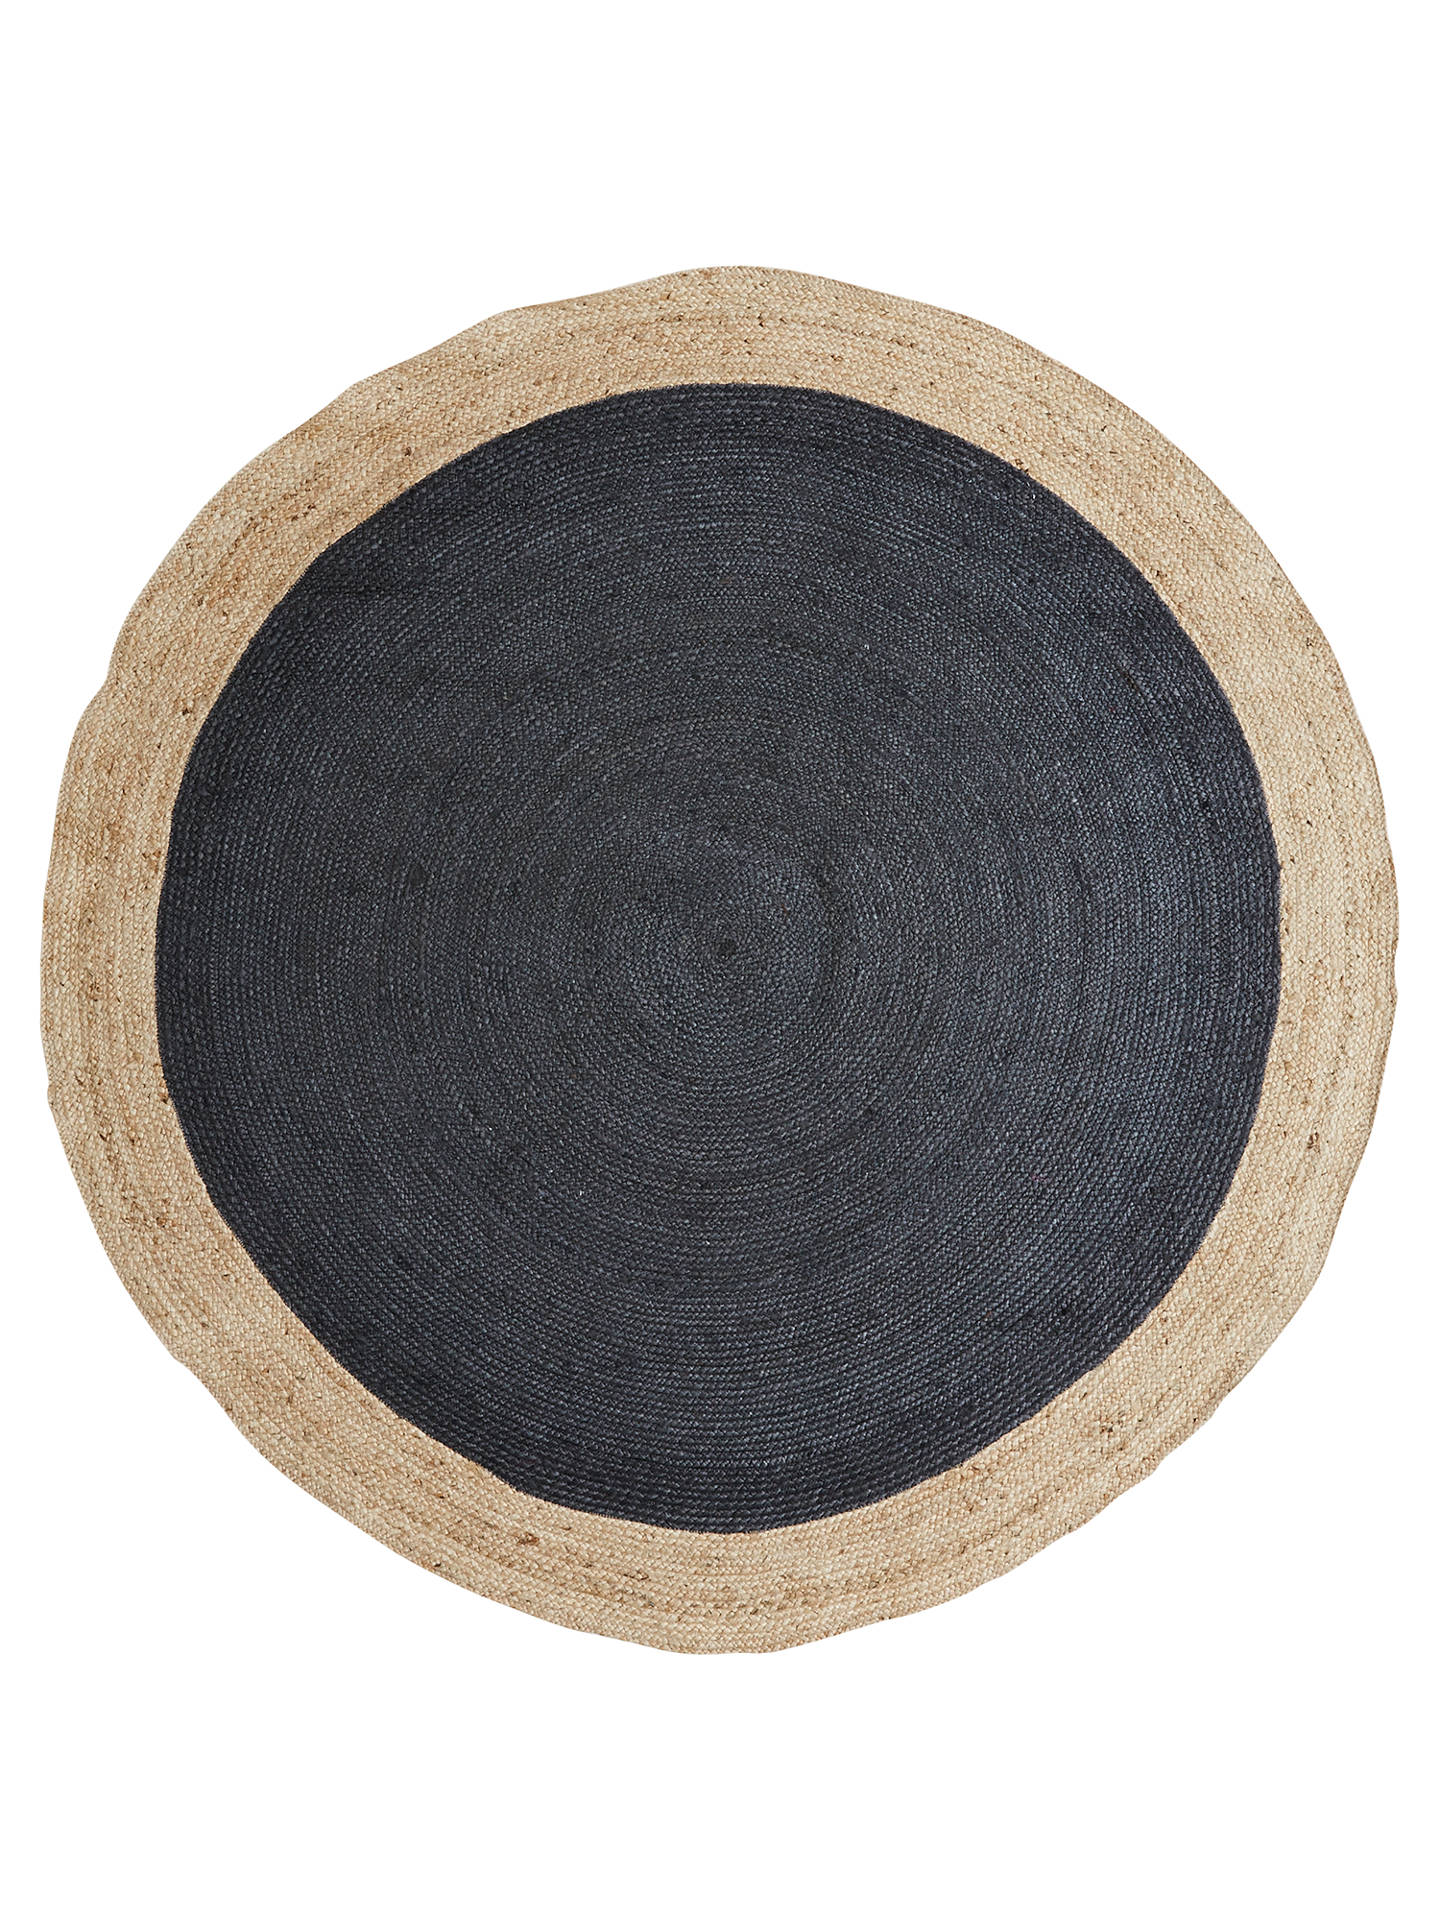 Border Round Jute Rug At John Lewis